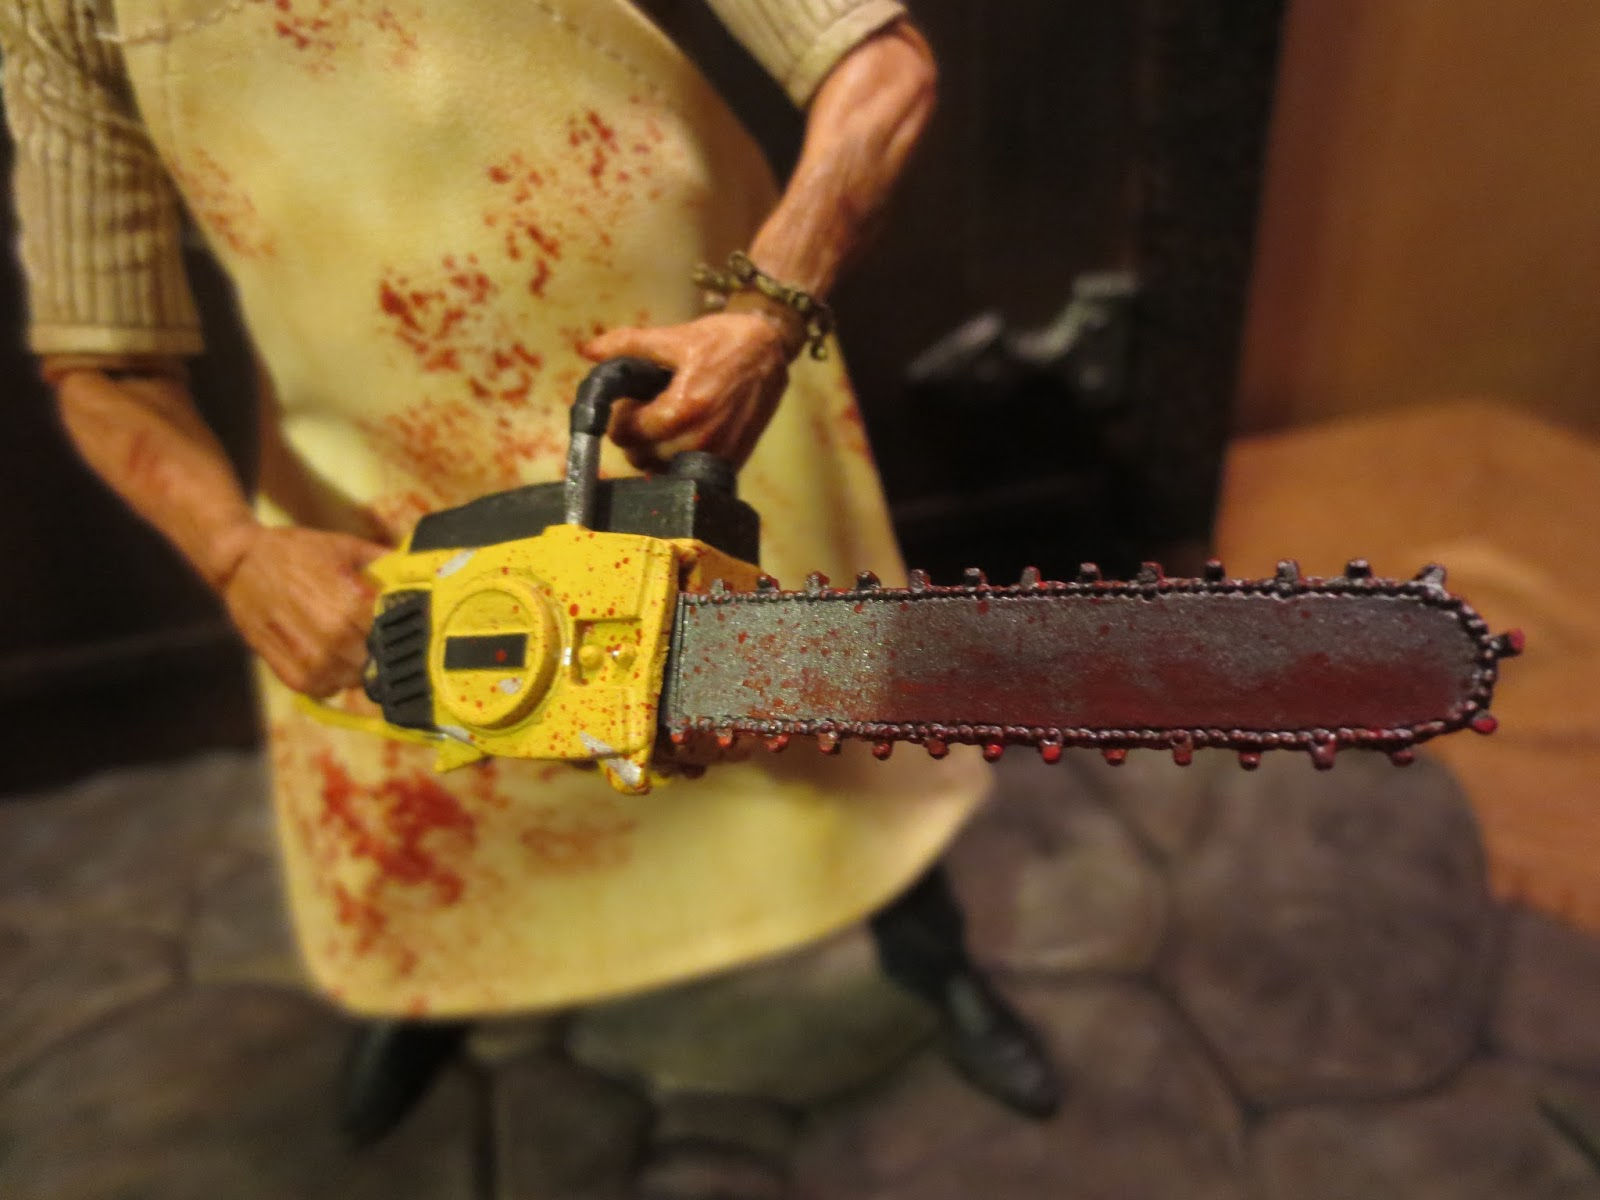 Bloody chainsaw